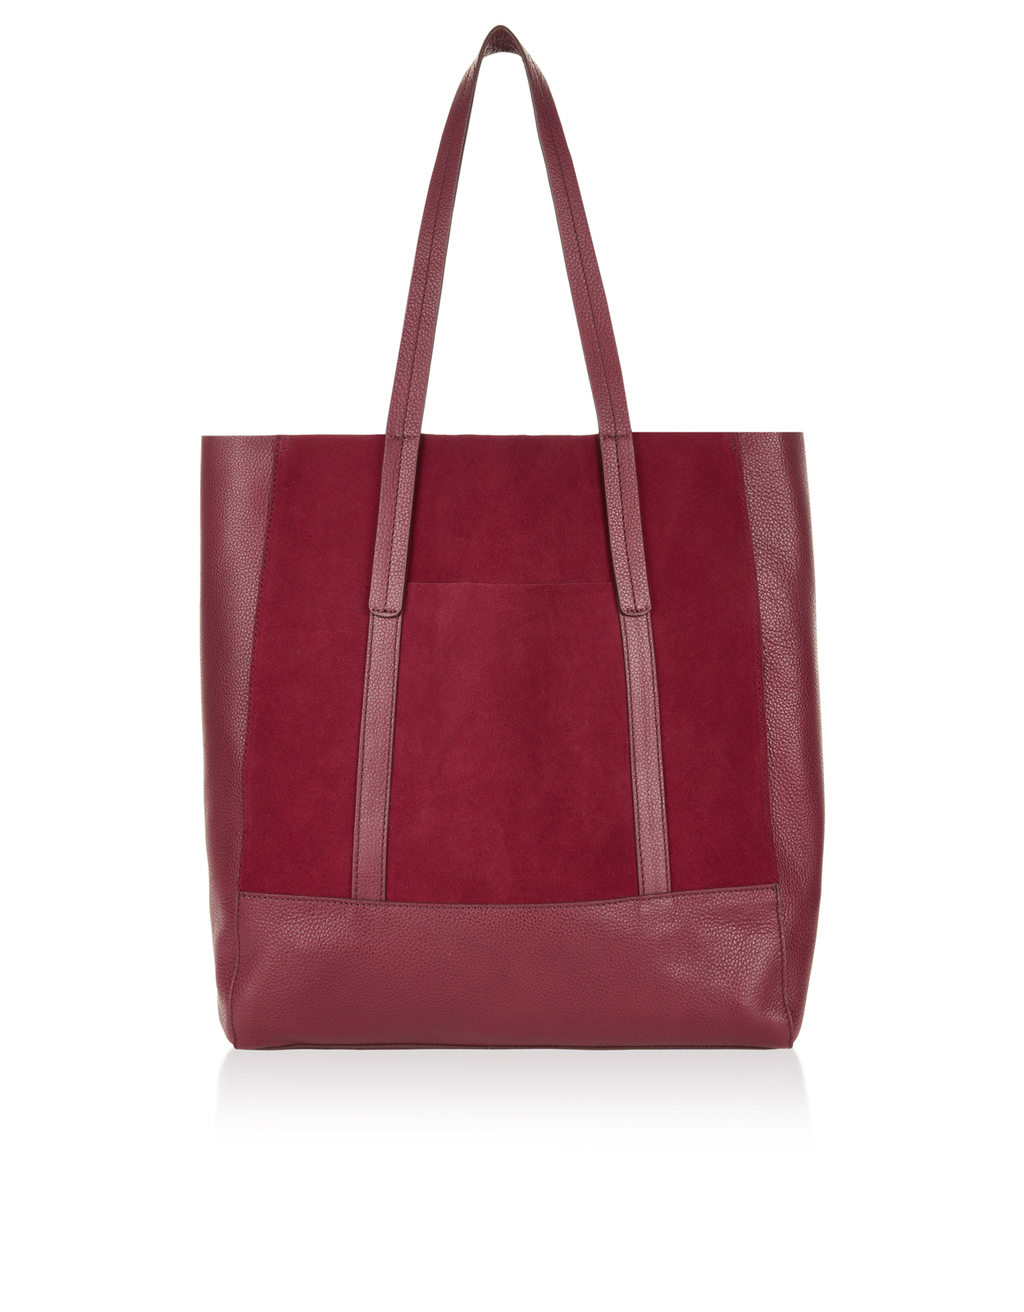 Carina Suede & Leather Shopper Bag - occasions: casual, creative work; type of pattern: standard; style: tote; length: handle; size: oversized; material: leather; pattern: plain; finish: plain; predominant colour: raspberry; season: s/s 2016